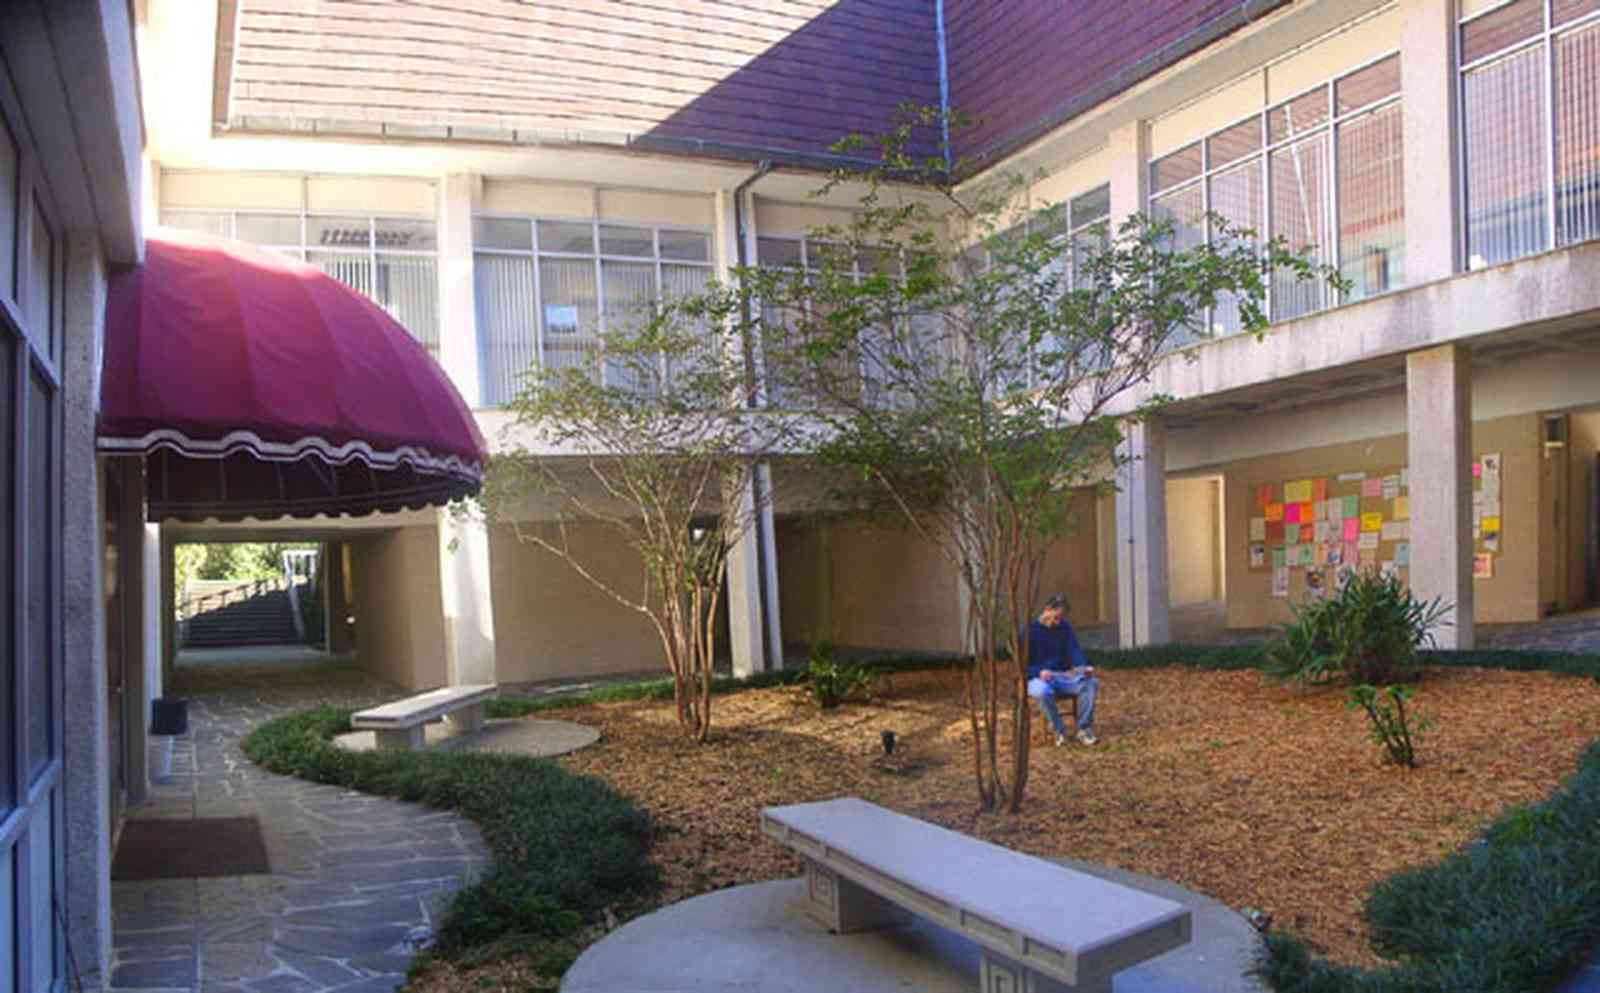 University-Of-West-Florida:-Campus_03.jpg:  dorm building, bench, campus, student, university